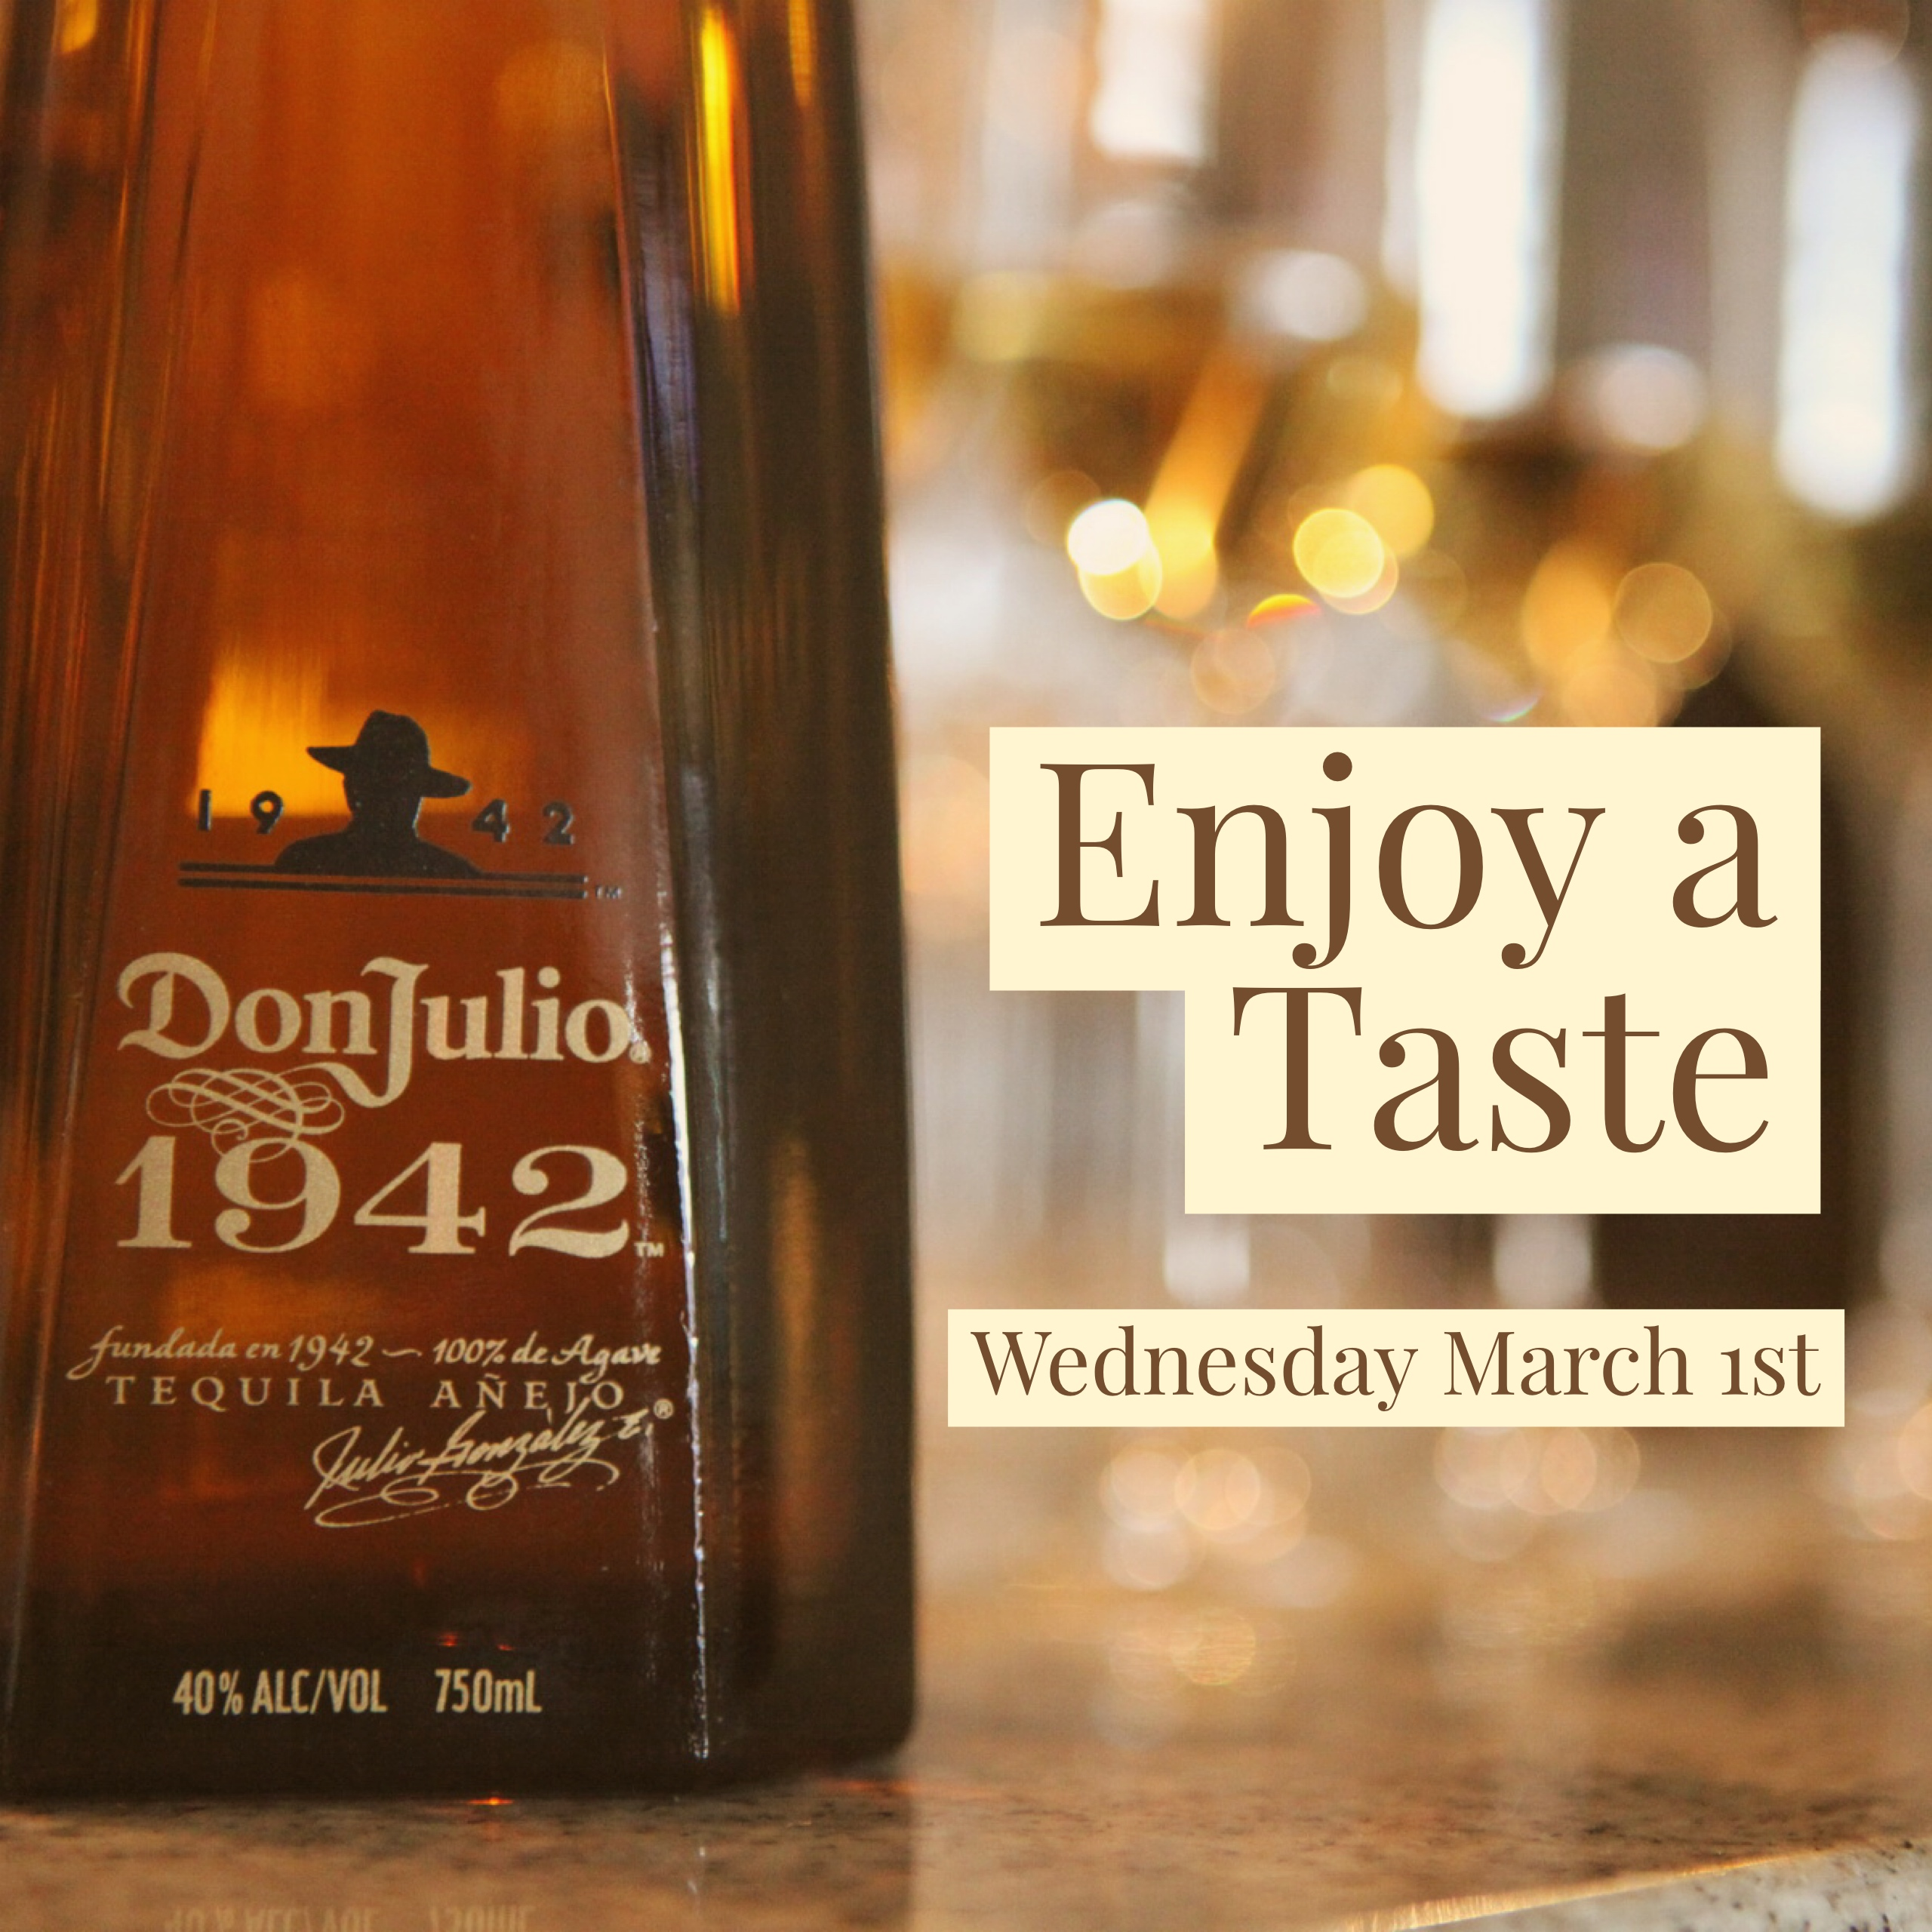 Don Julio 1942 Tasting March 1st